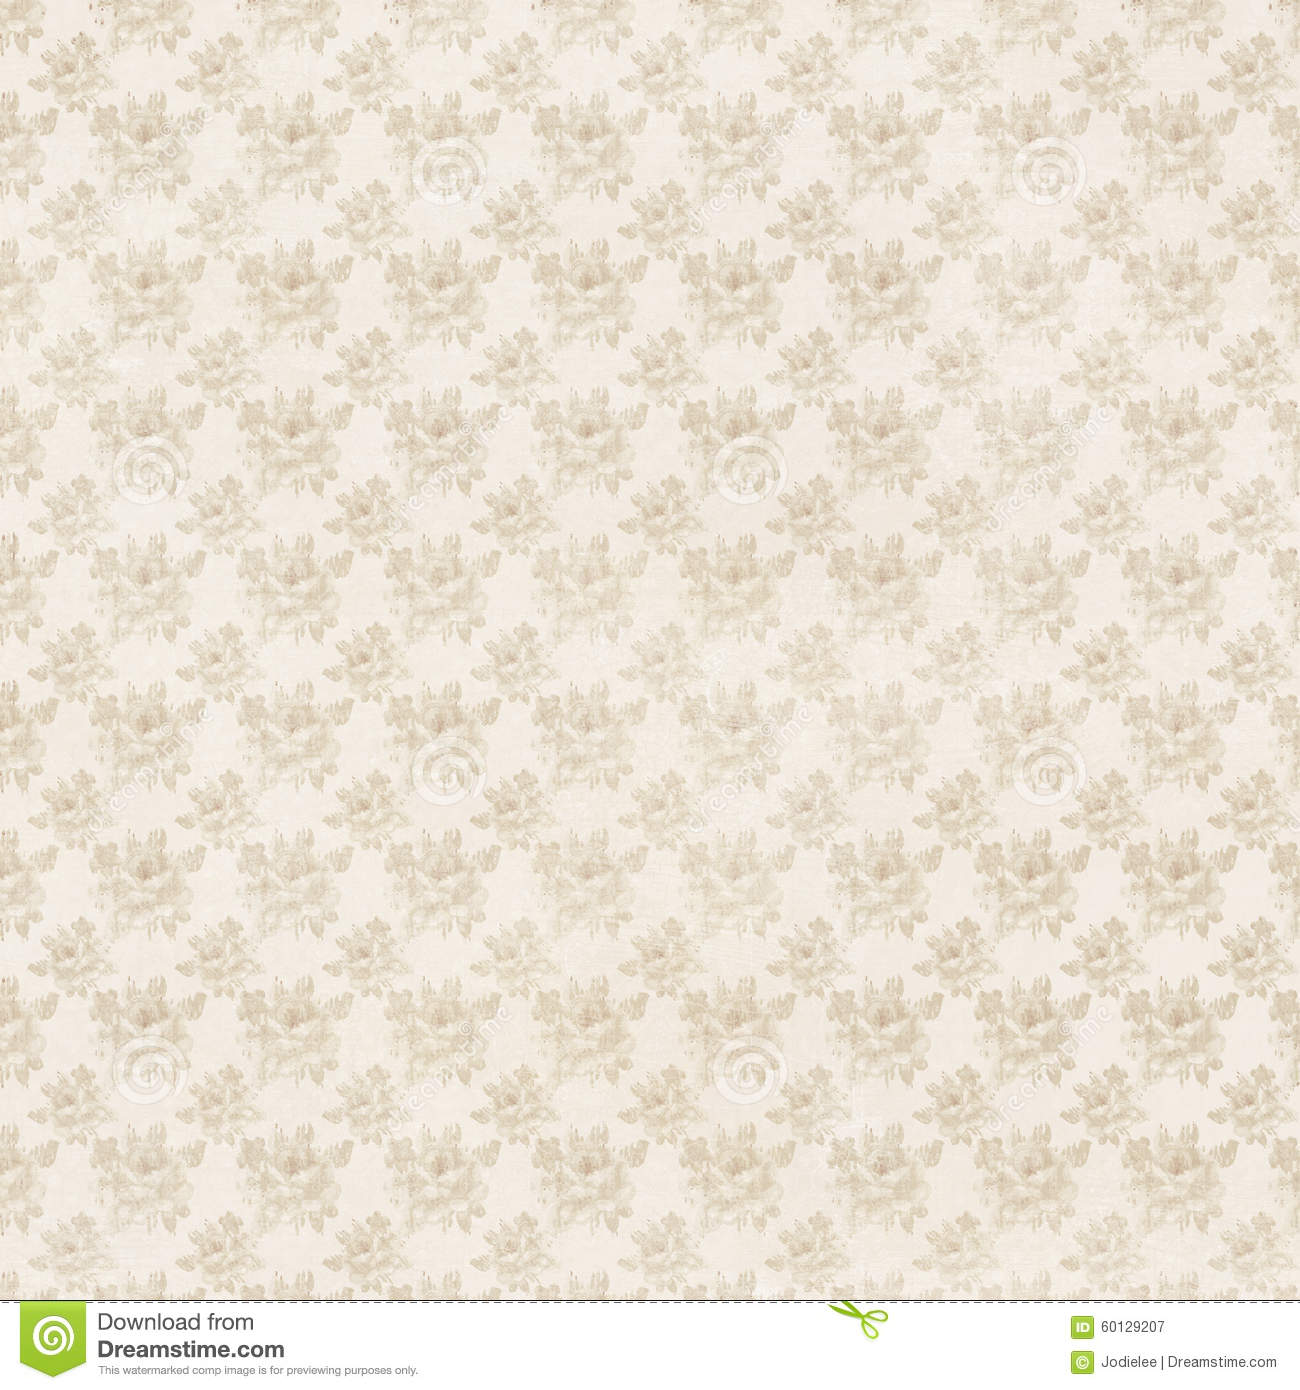 Beige And Cream Antique Roses Floral Repeat Background